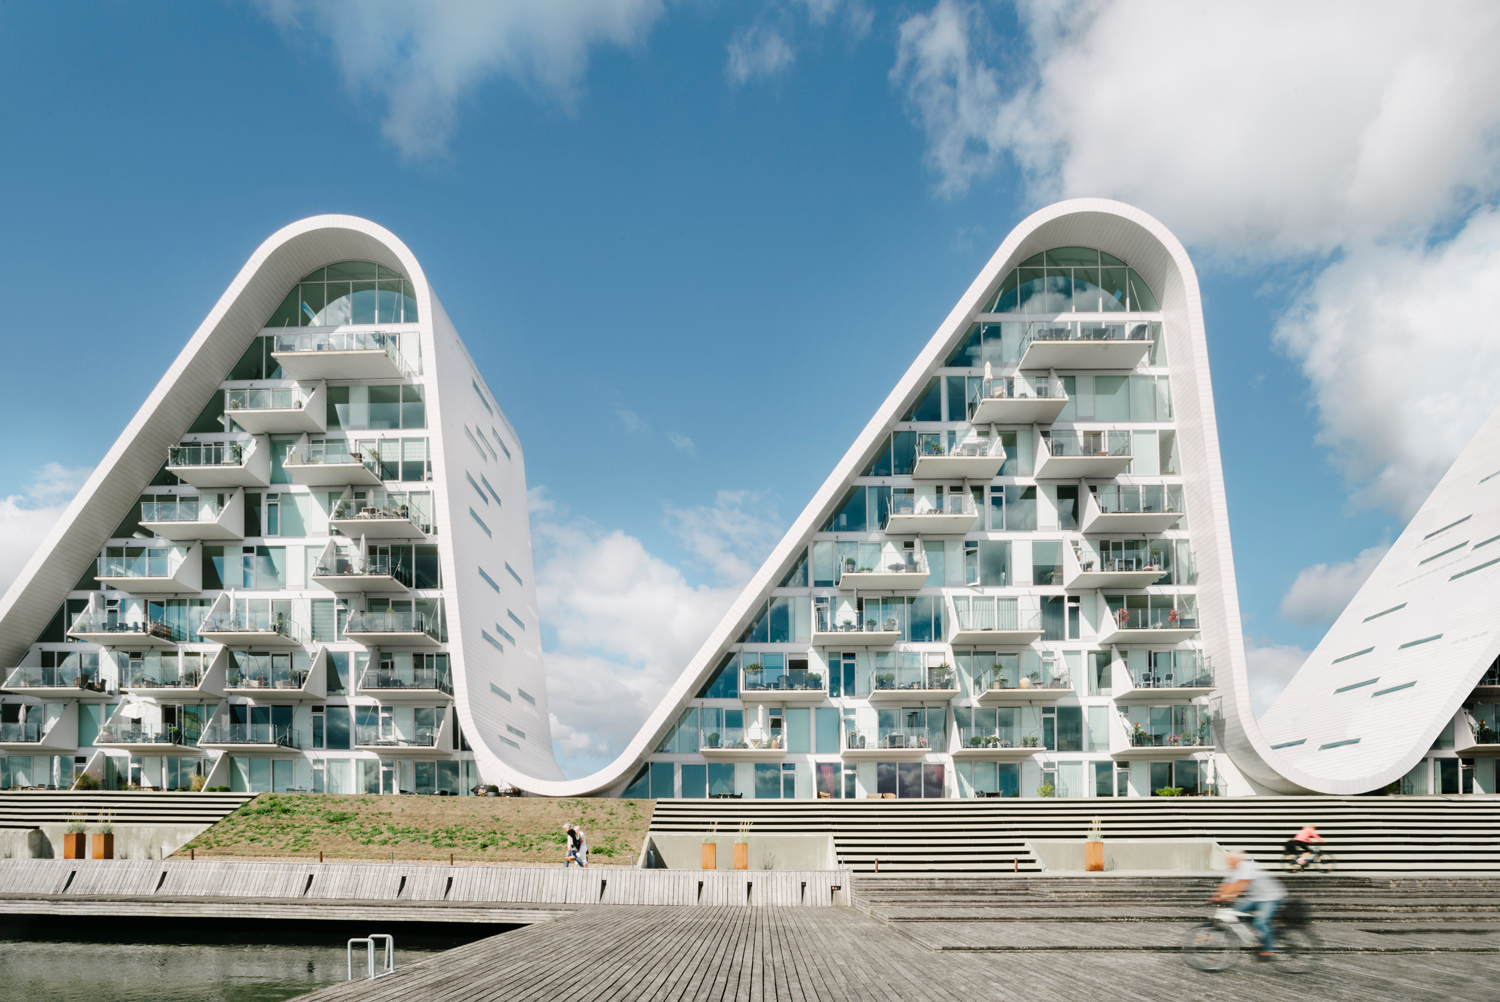 Greenbuilding magazine, The Wave, Henning Larsen, Photo by Jacob Due